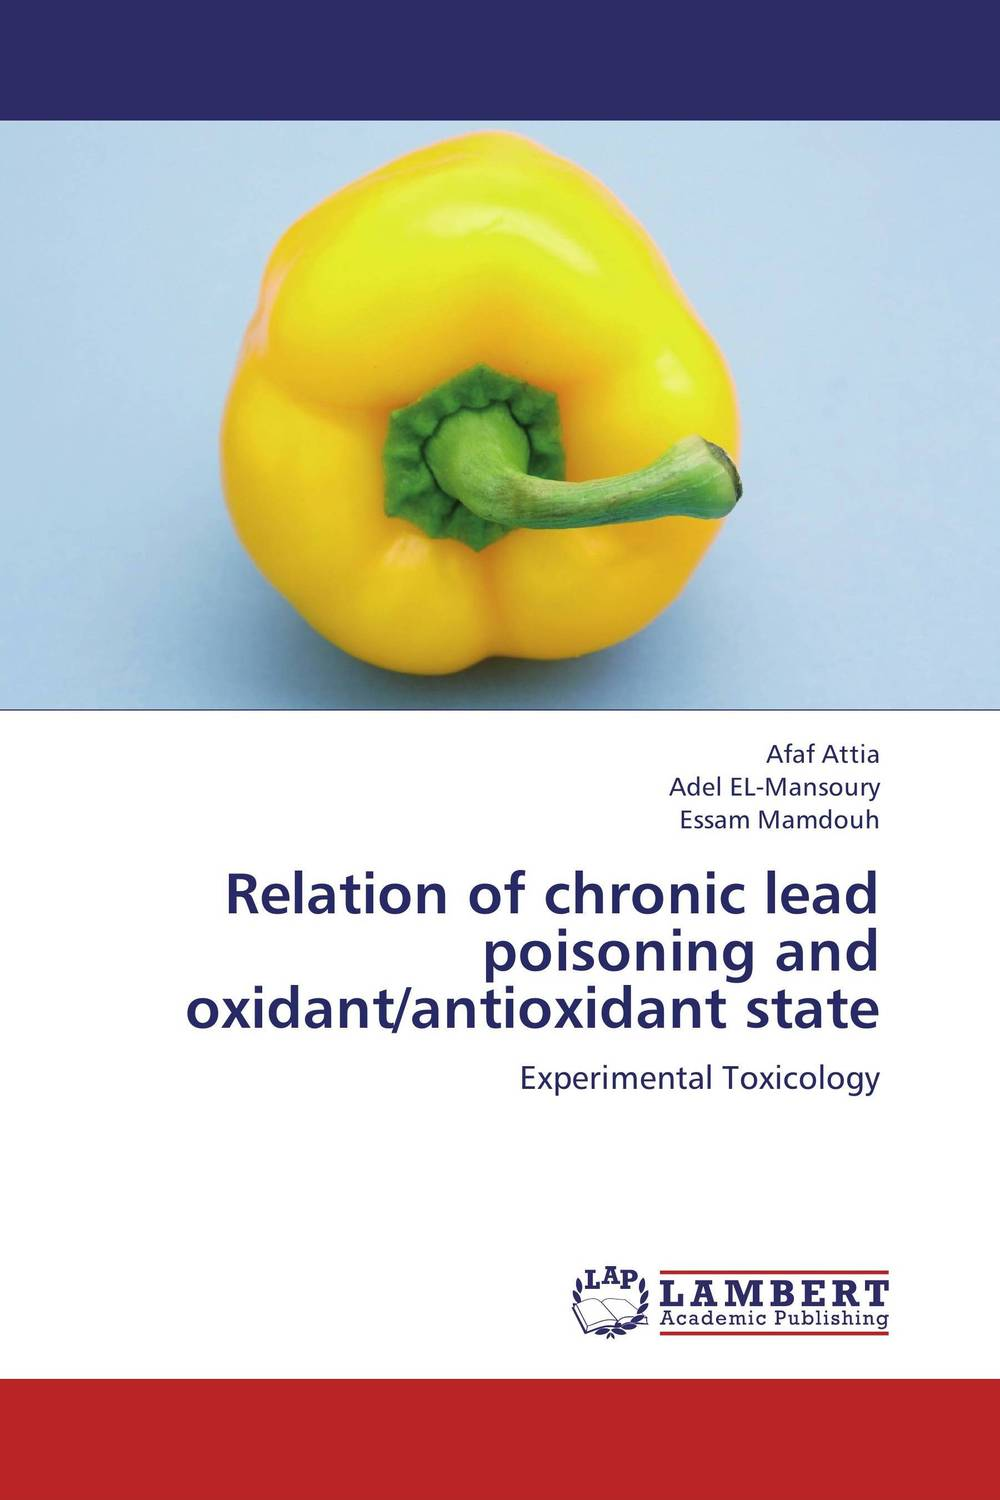 Relation of chronic lead poisoning and oxidant/antioxidant state 100g vitamin e food grade usa imported page 6